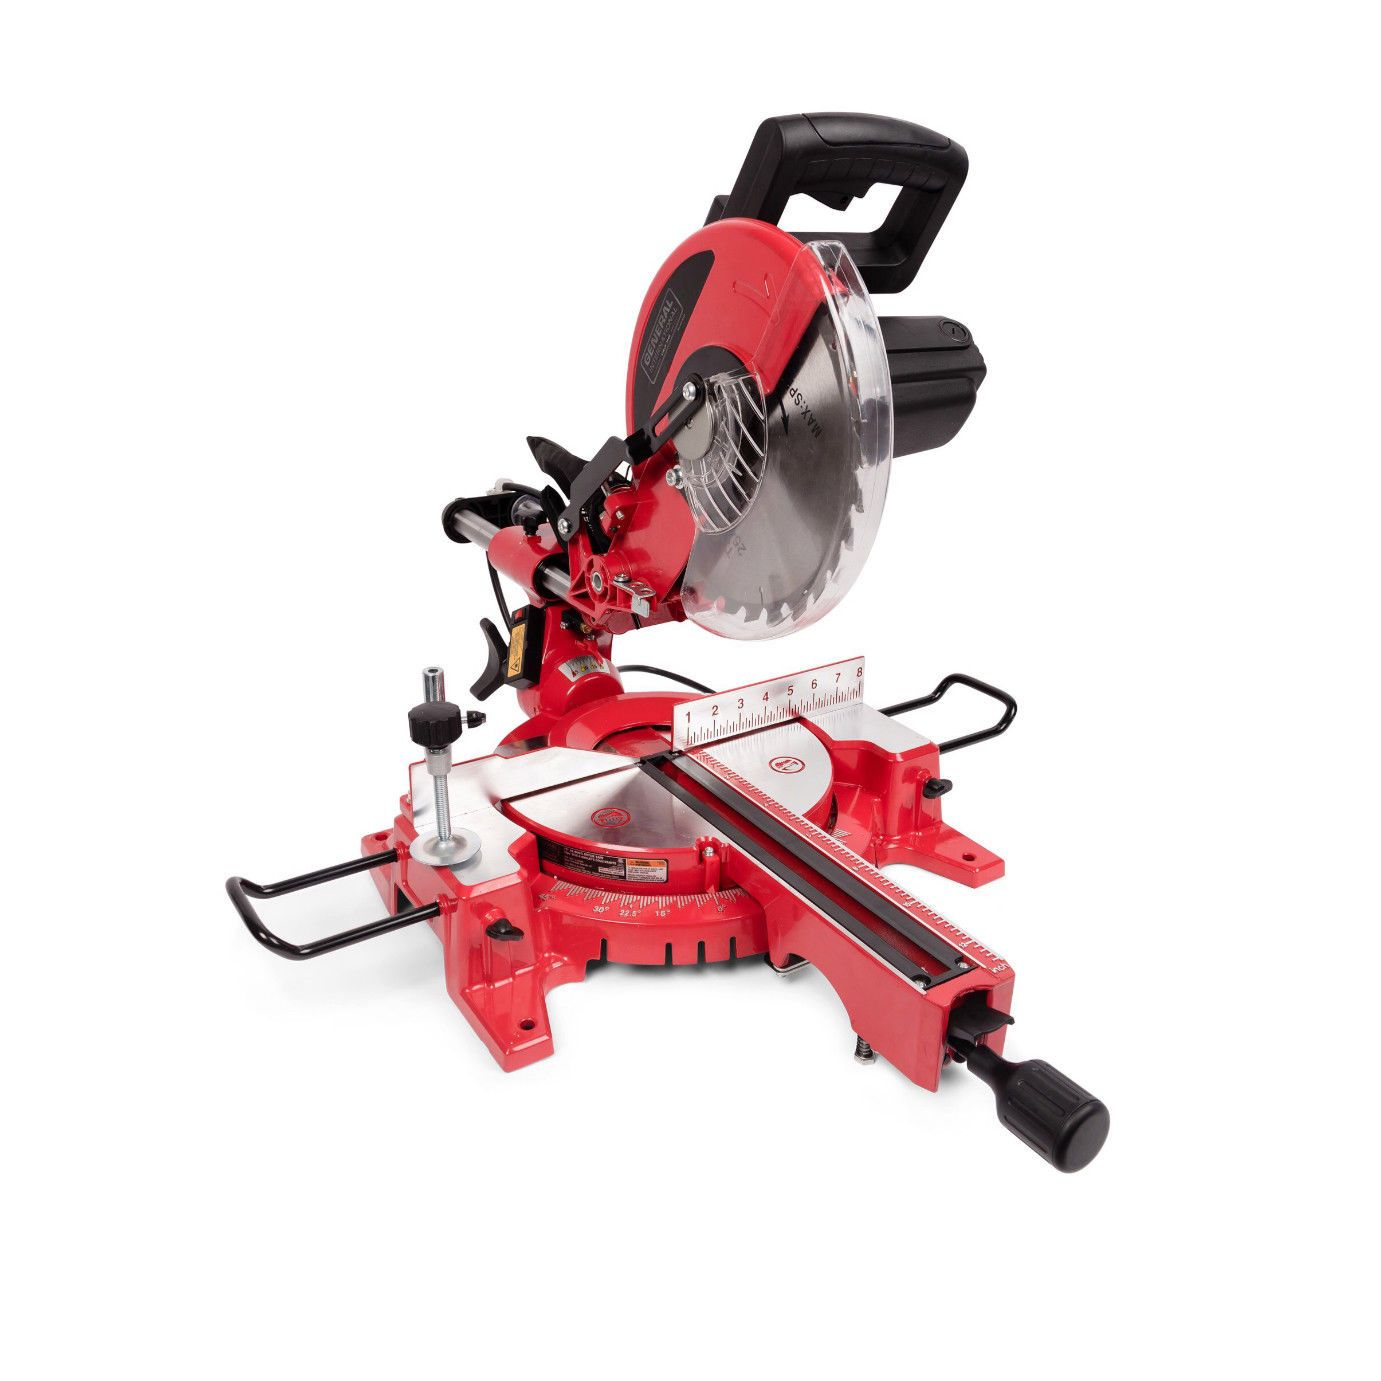 Miter And Chop Saws 20787 10 Sliding Miter Saw Red General International Power Products Ms3005 Tool New Buy It Now Only Sliding Mitre Saw Miter Saw Mitered